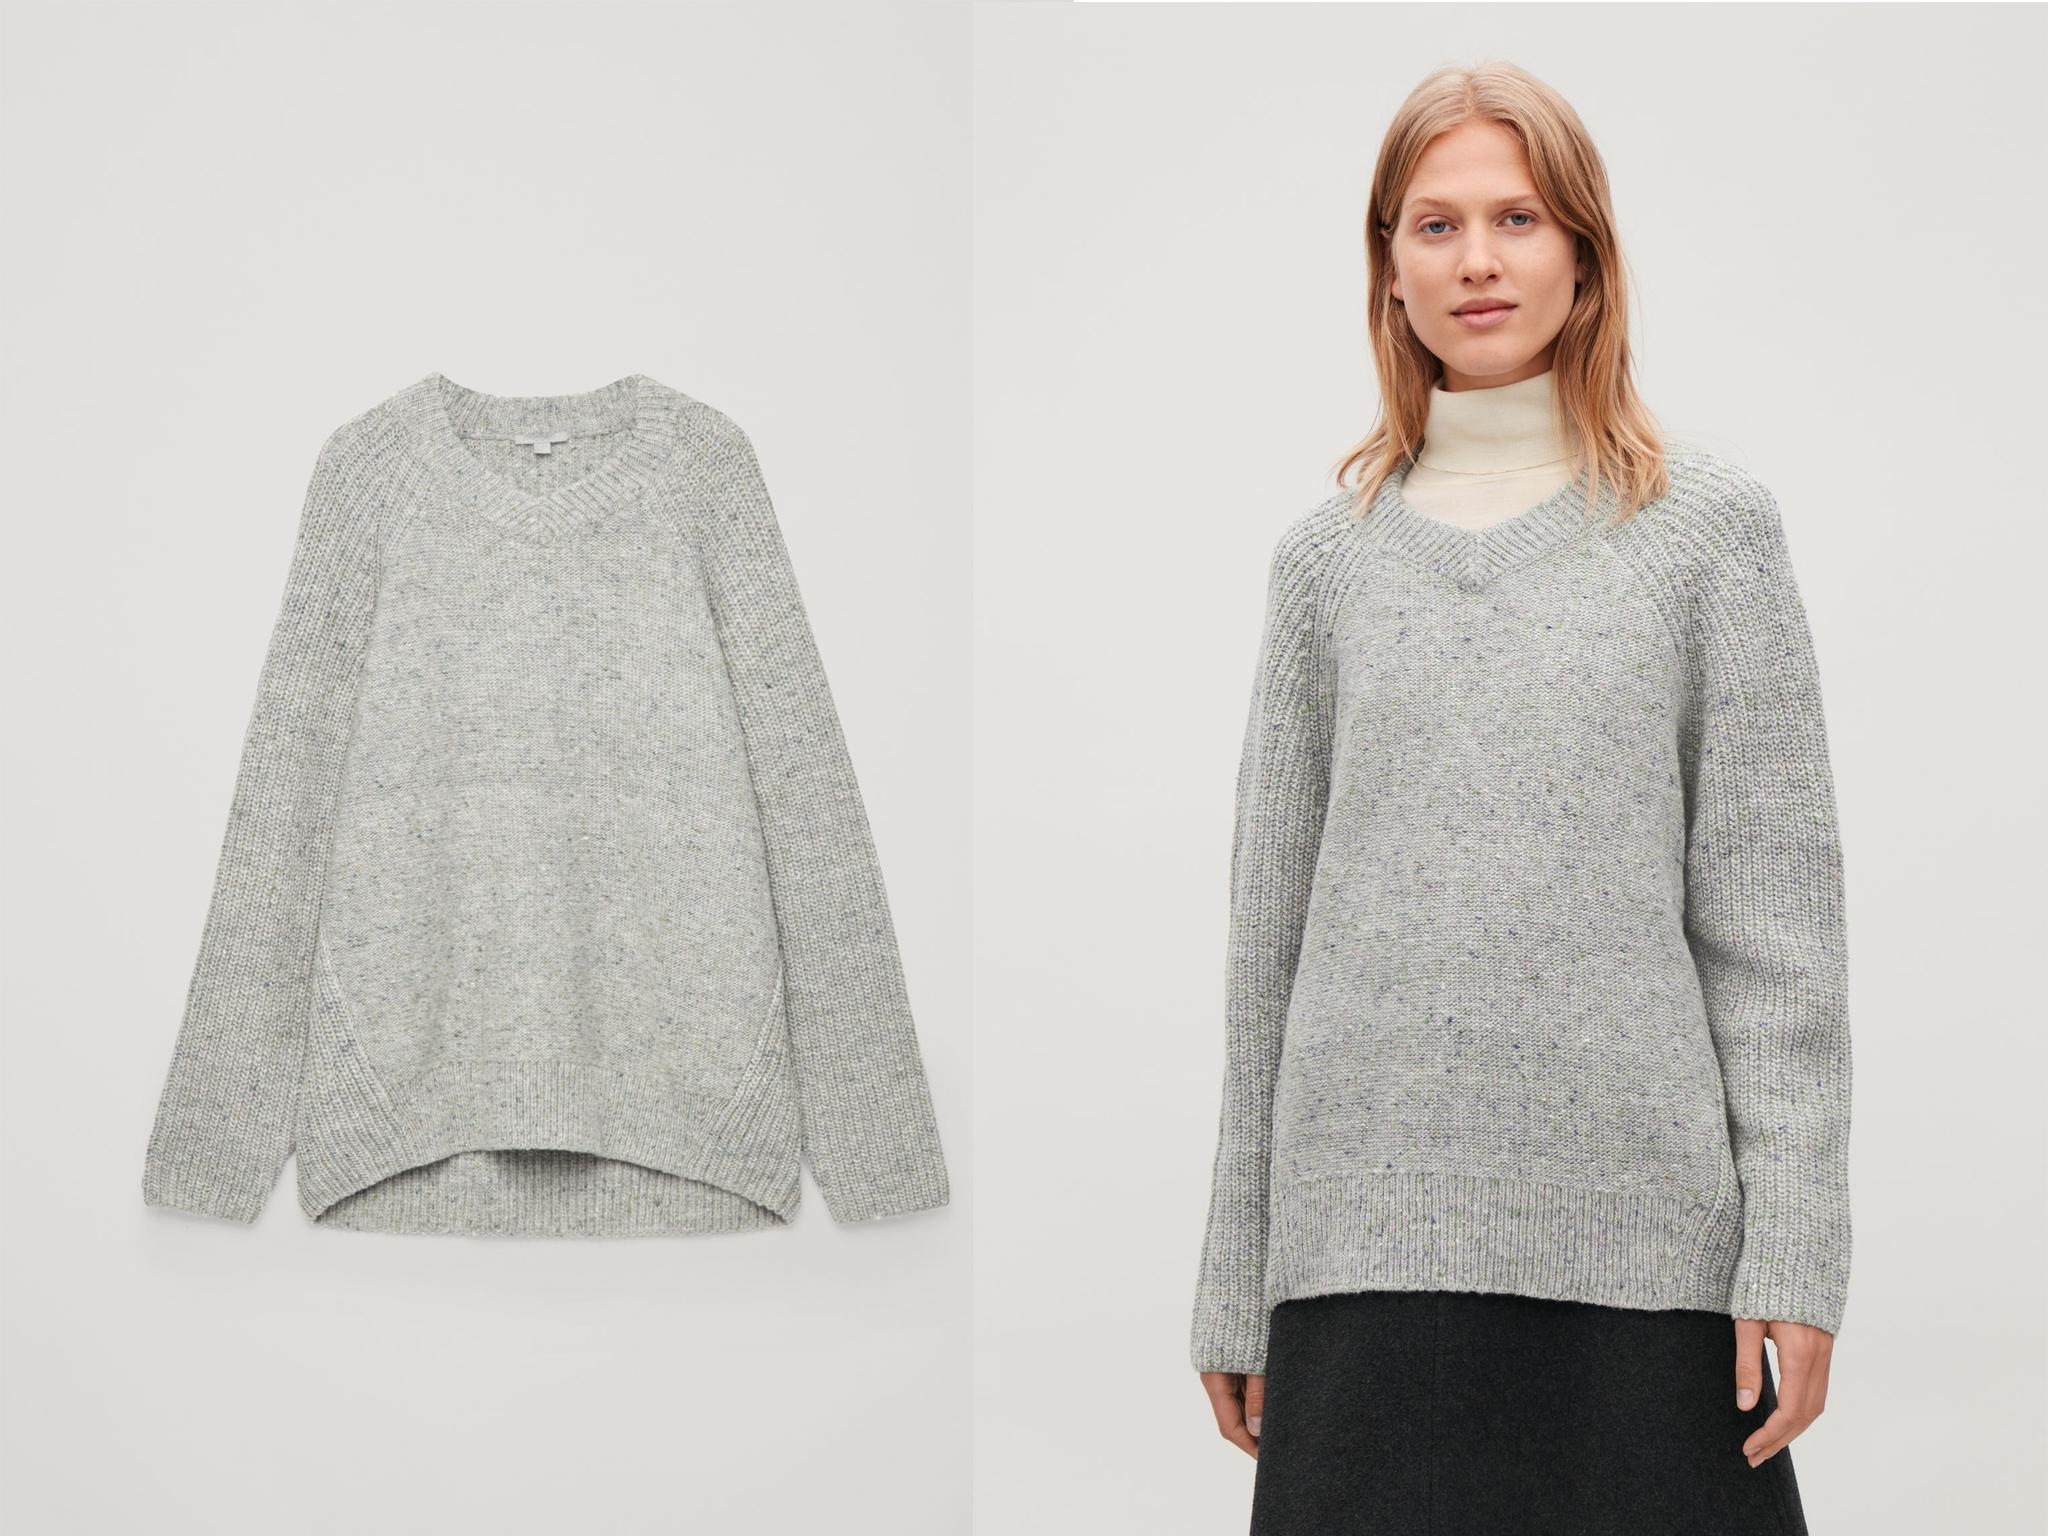 b25cefbec4d 10 best women's chunky knit jumpers | The Independent